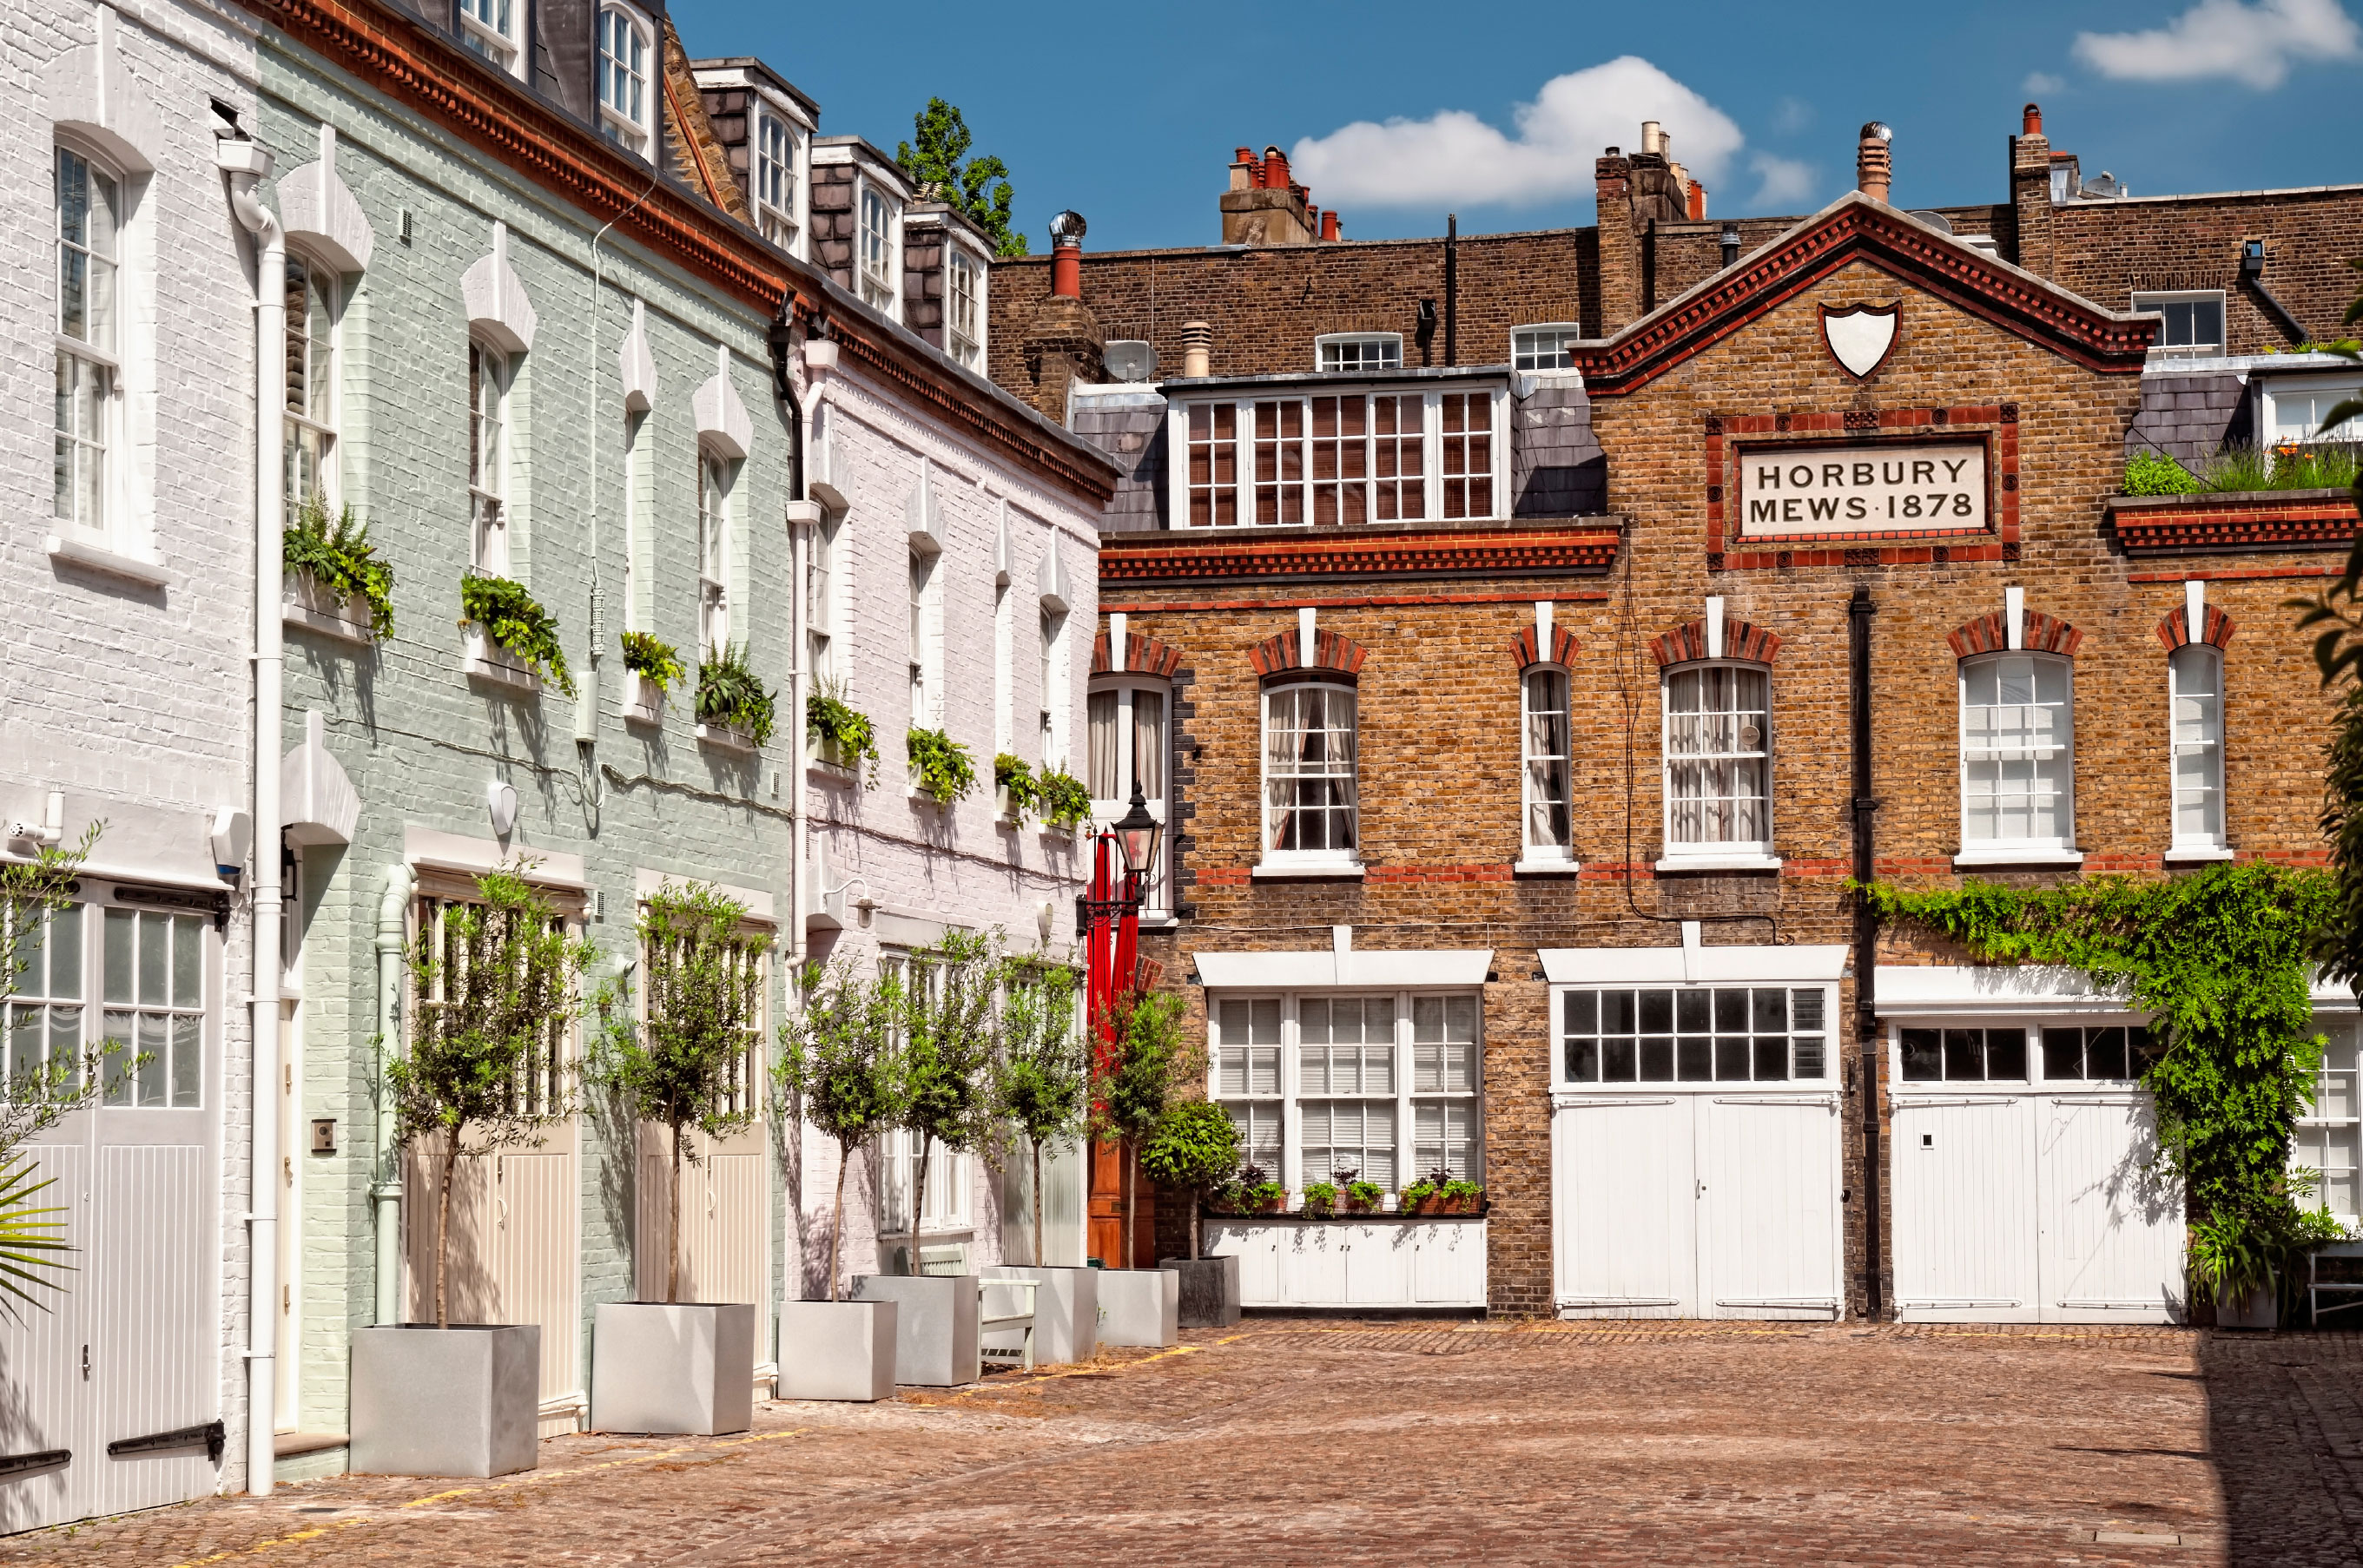 Horbury Mews Notting Hill